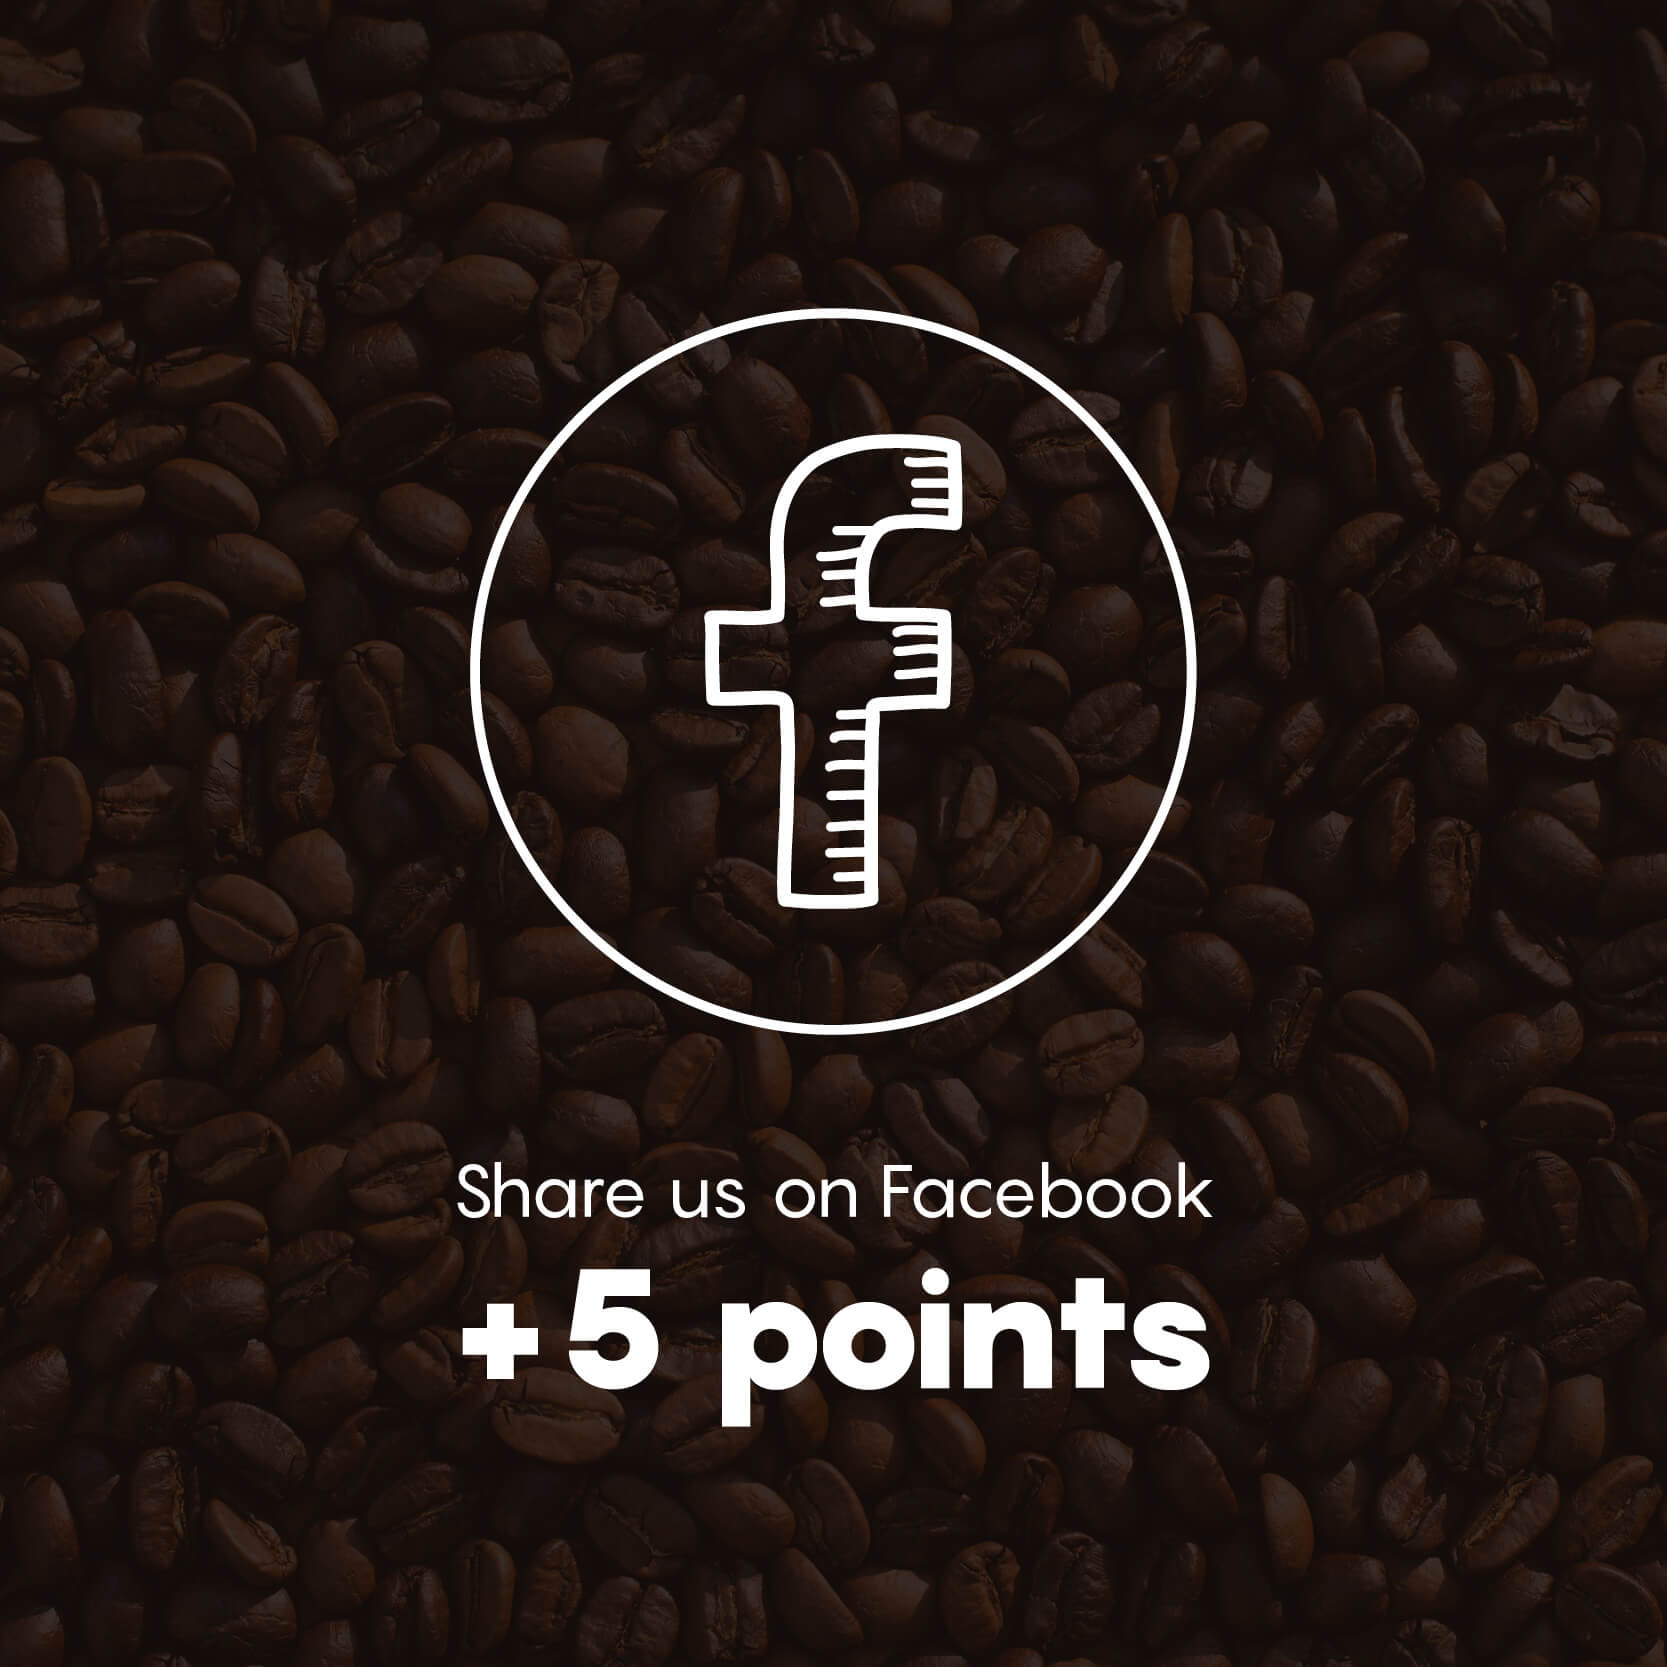 Share us on Facebook +5 Points